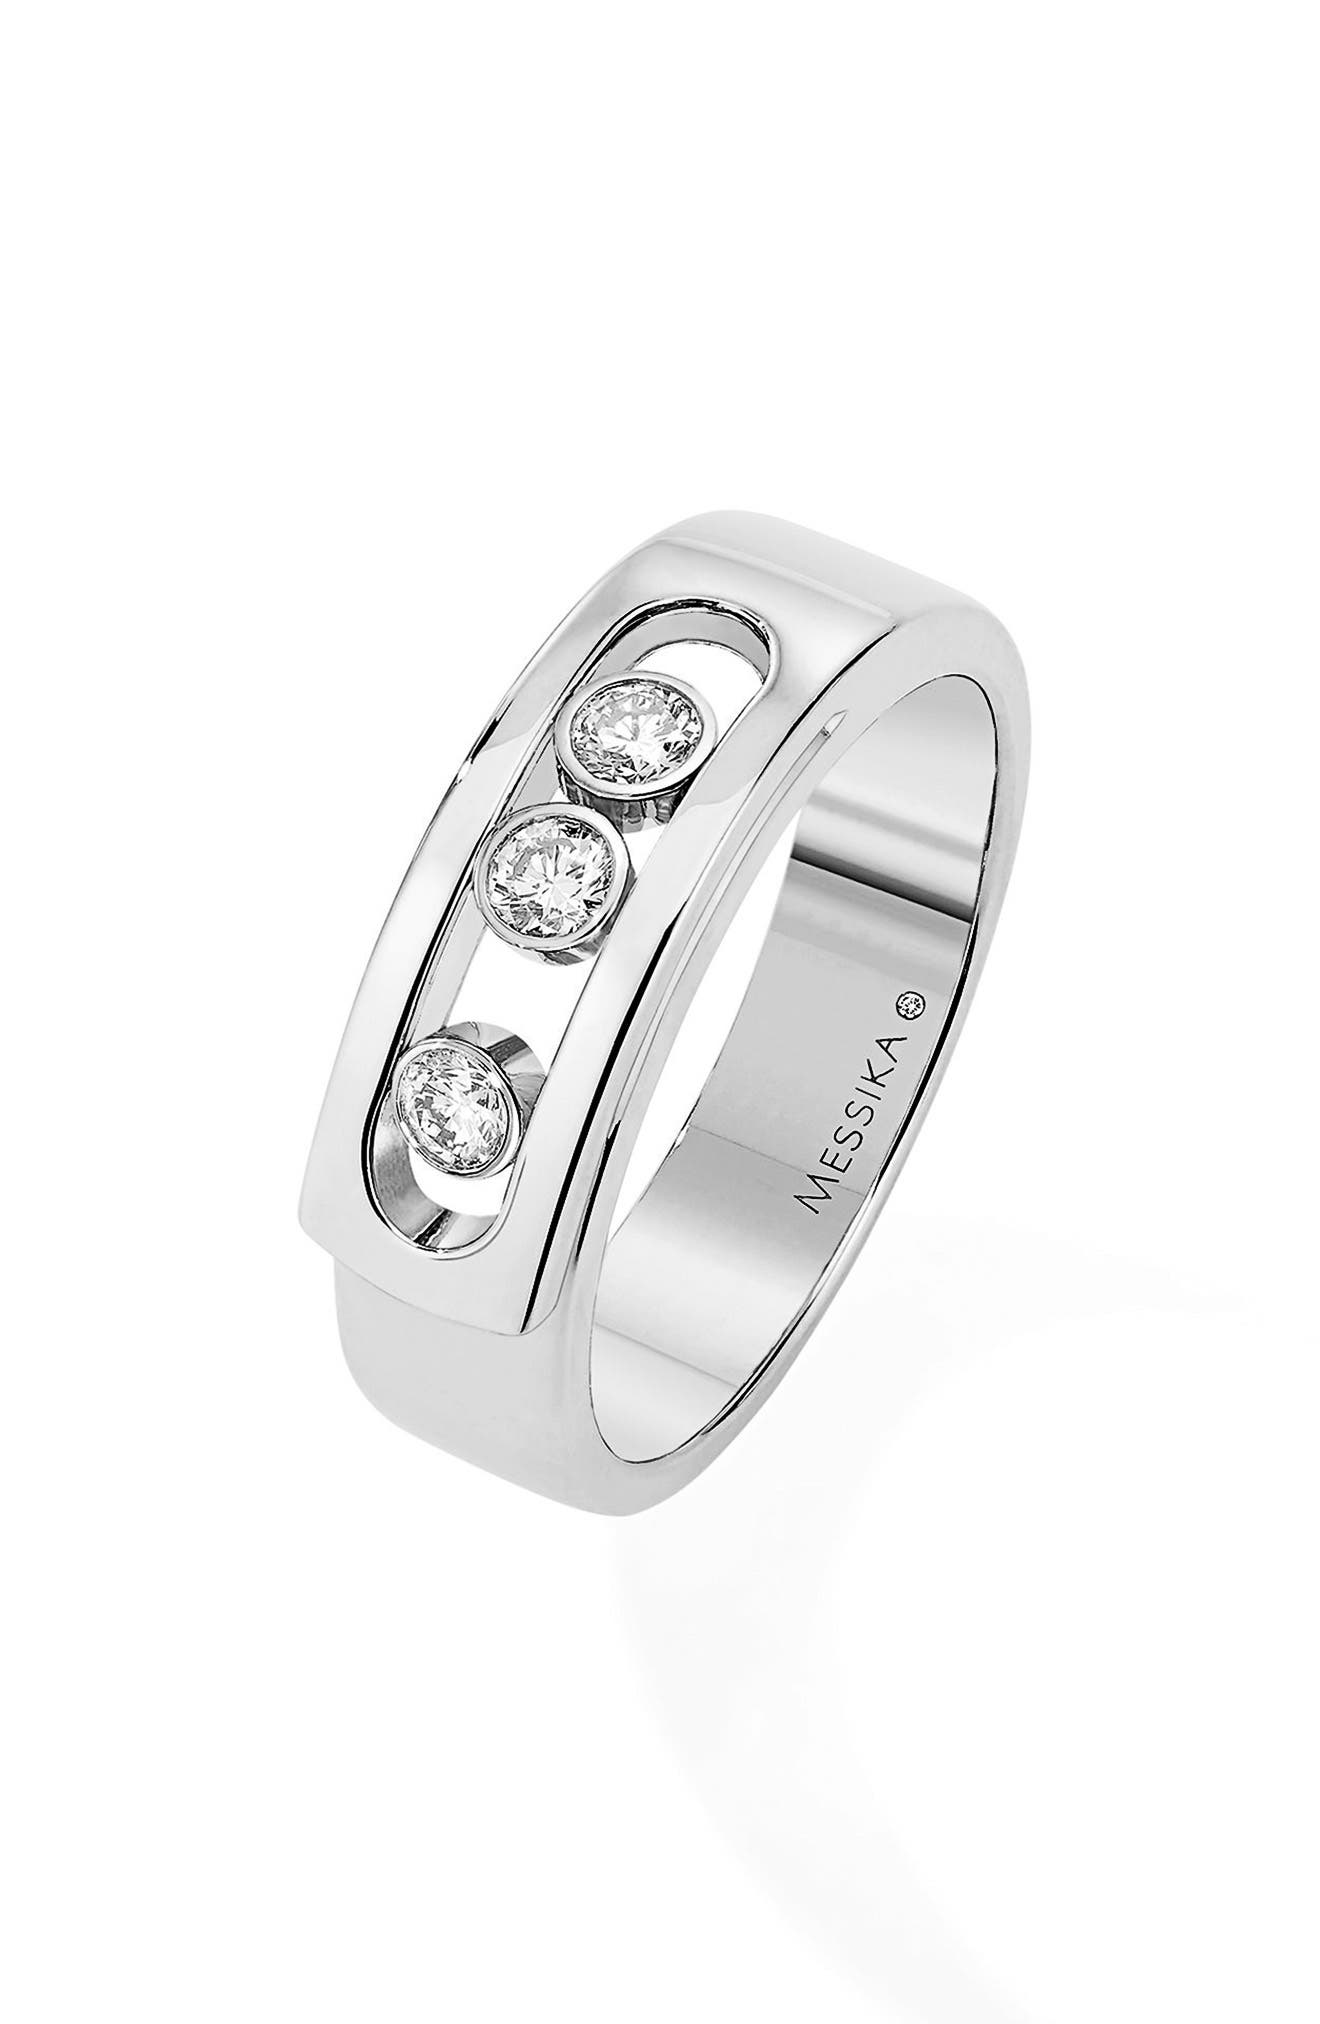 Move Noa Diamond Band Ring,                             Main thumbnail 1, color,                             WHITE GOLD